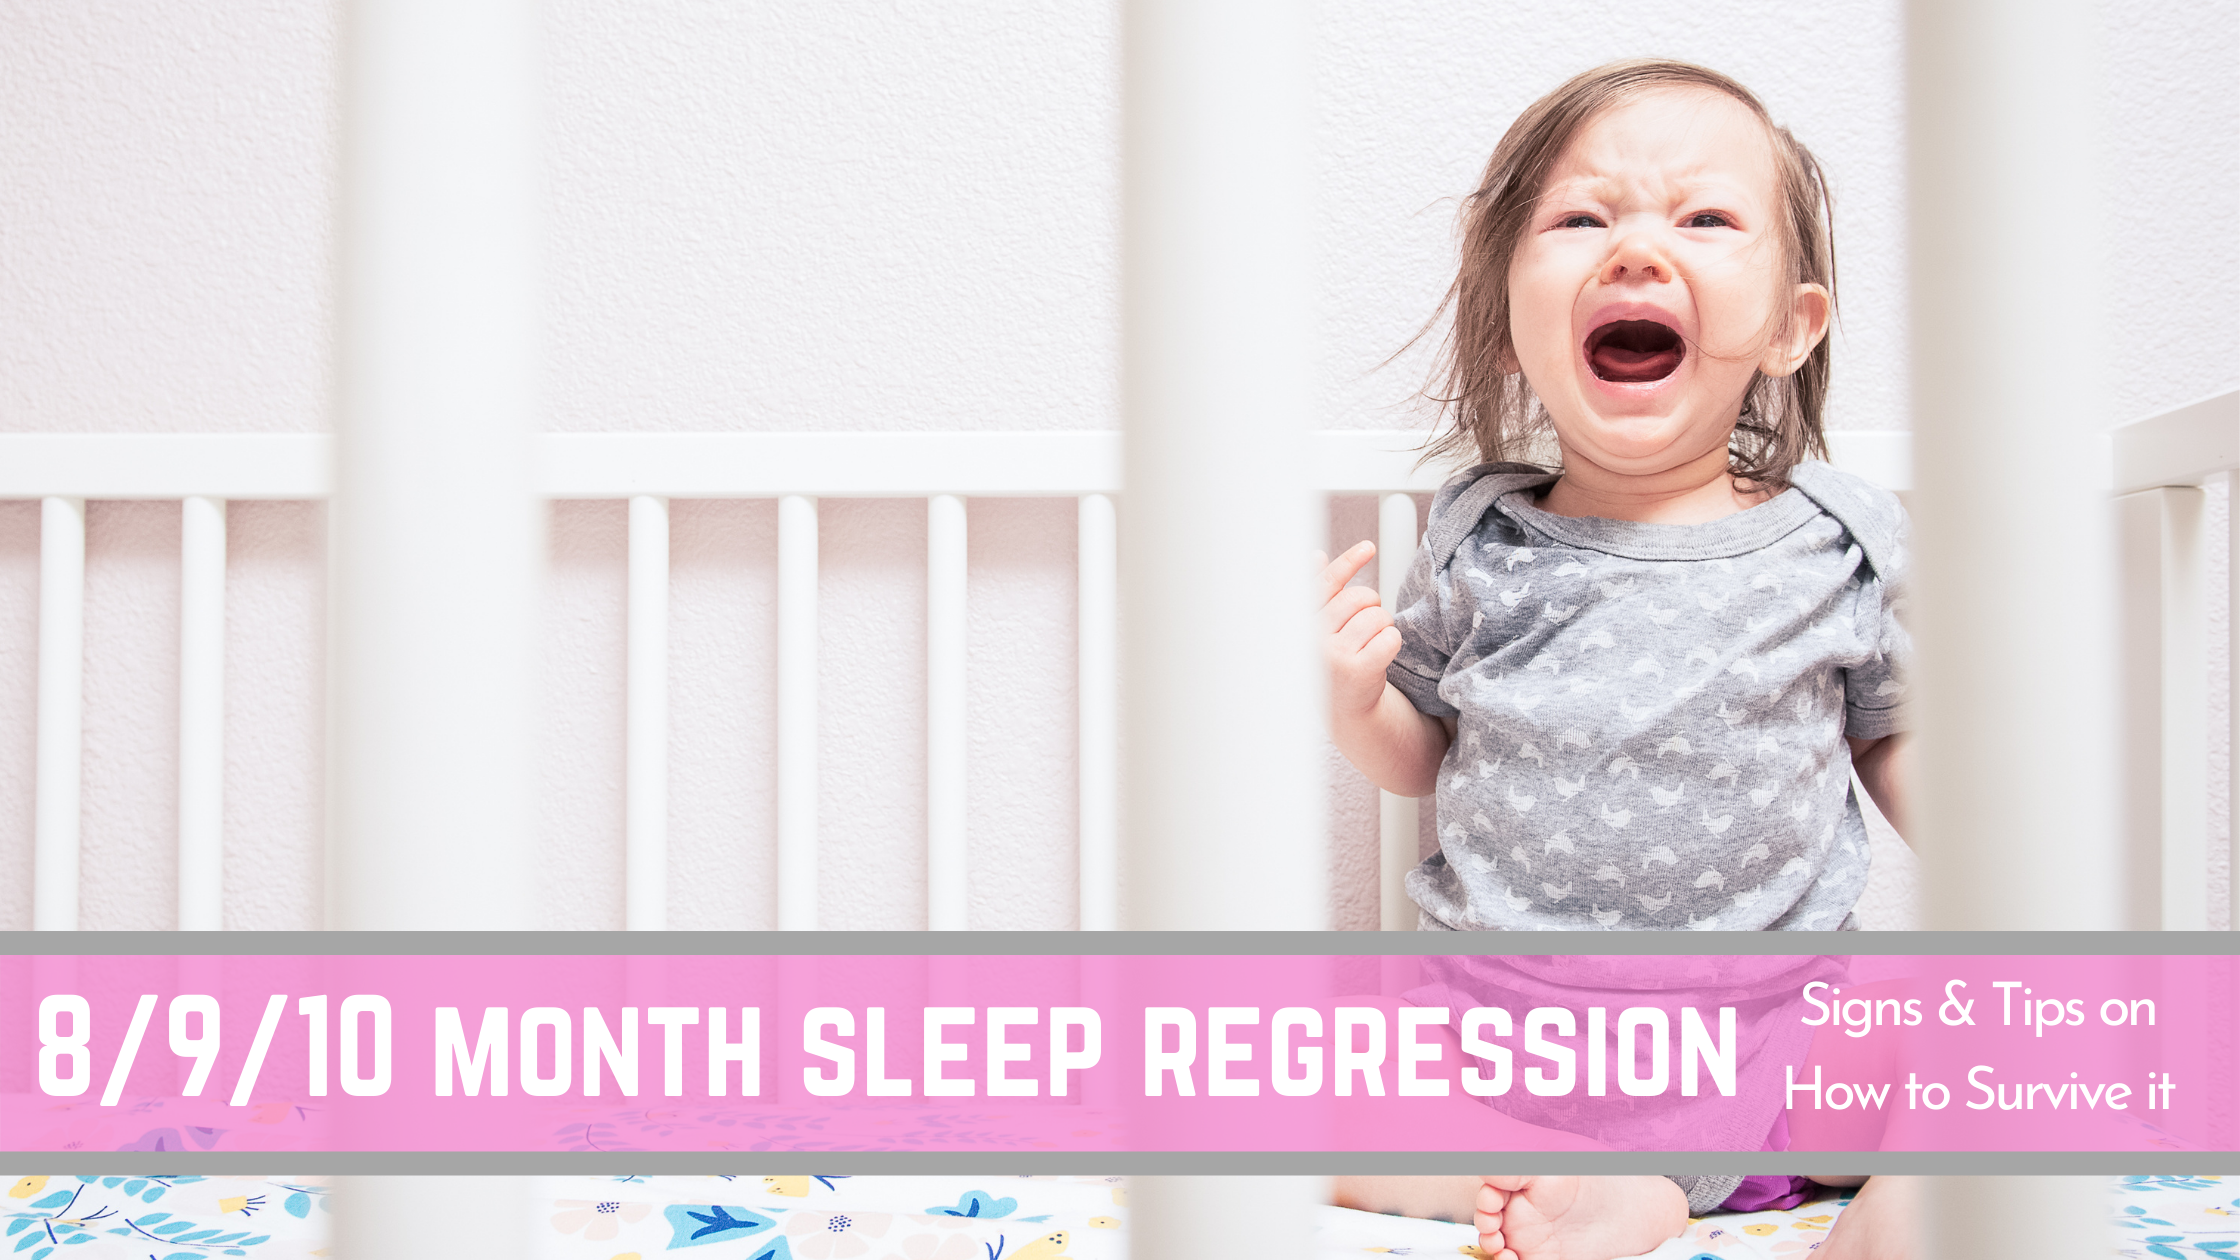 The 8, 9 or 10 Month Sleep Regression: Signs and Tips on How to Survive it